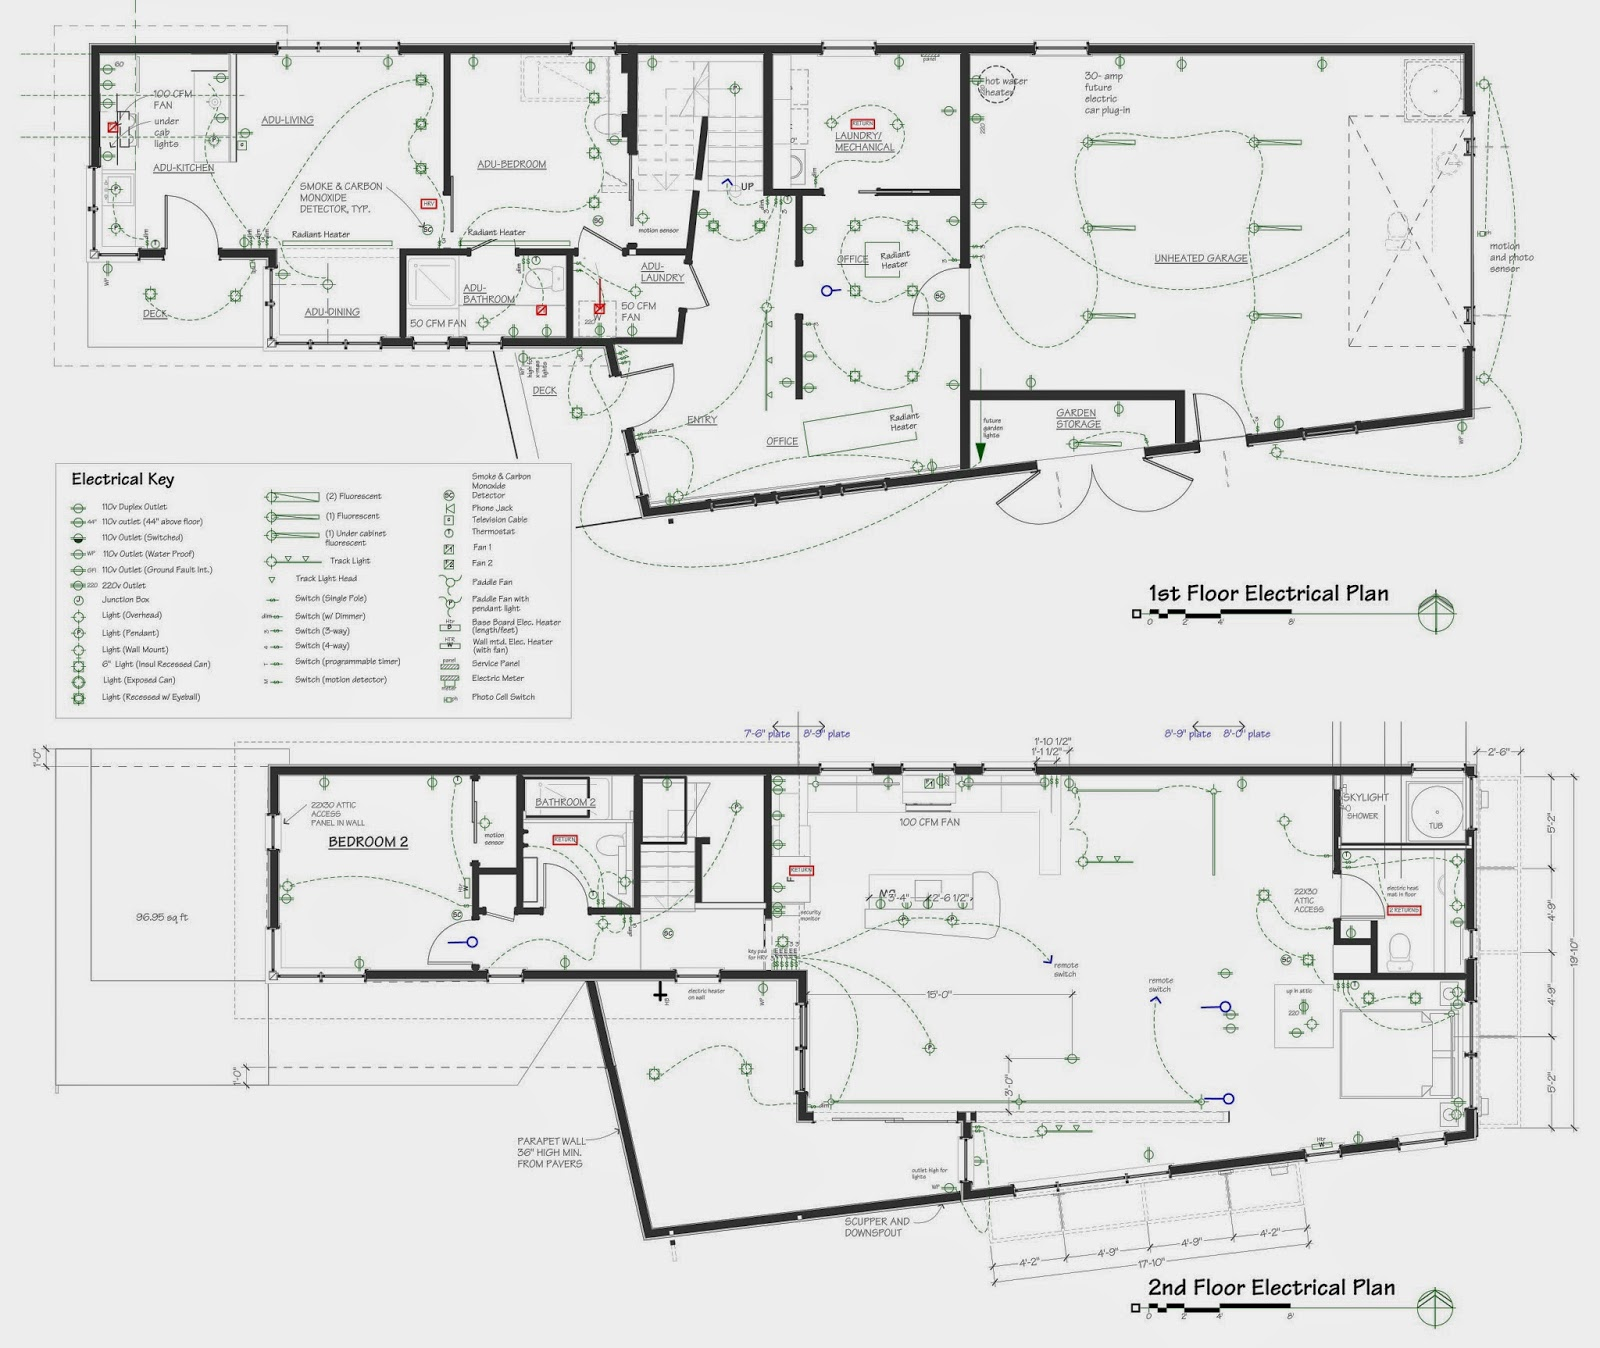 How To Create House Electrical Plan Easily With Regard To: Details Of Home: June 2014